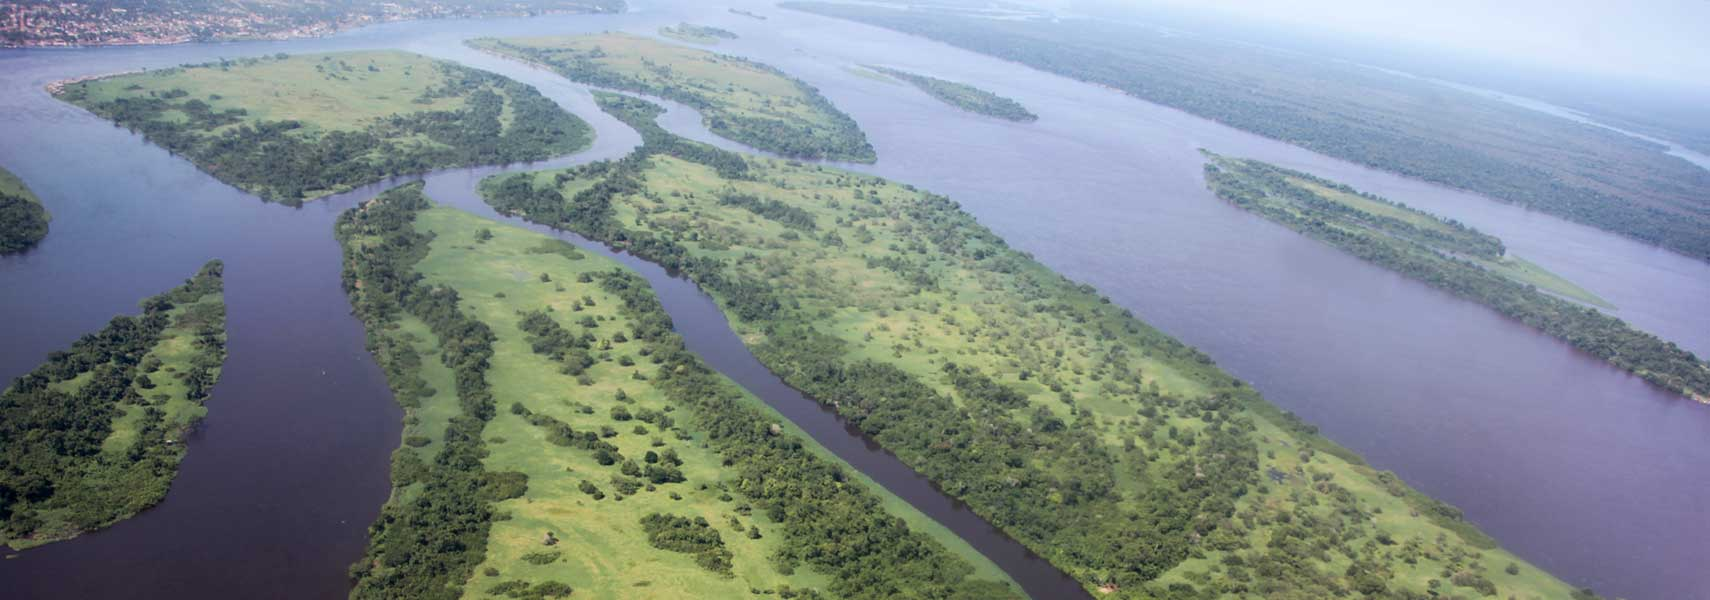 Aerial view of the Congo River near Kisangani, capital of Orientale Province, Democratic Republic of the Congo